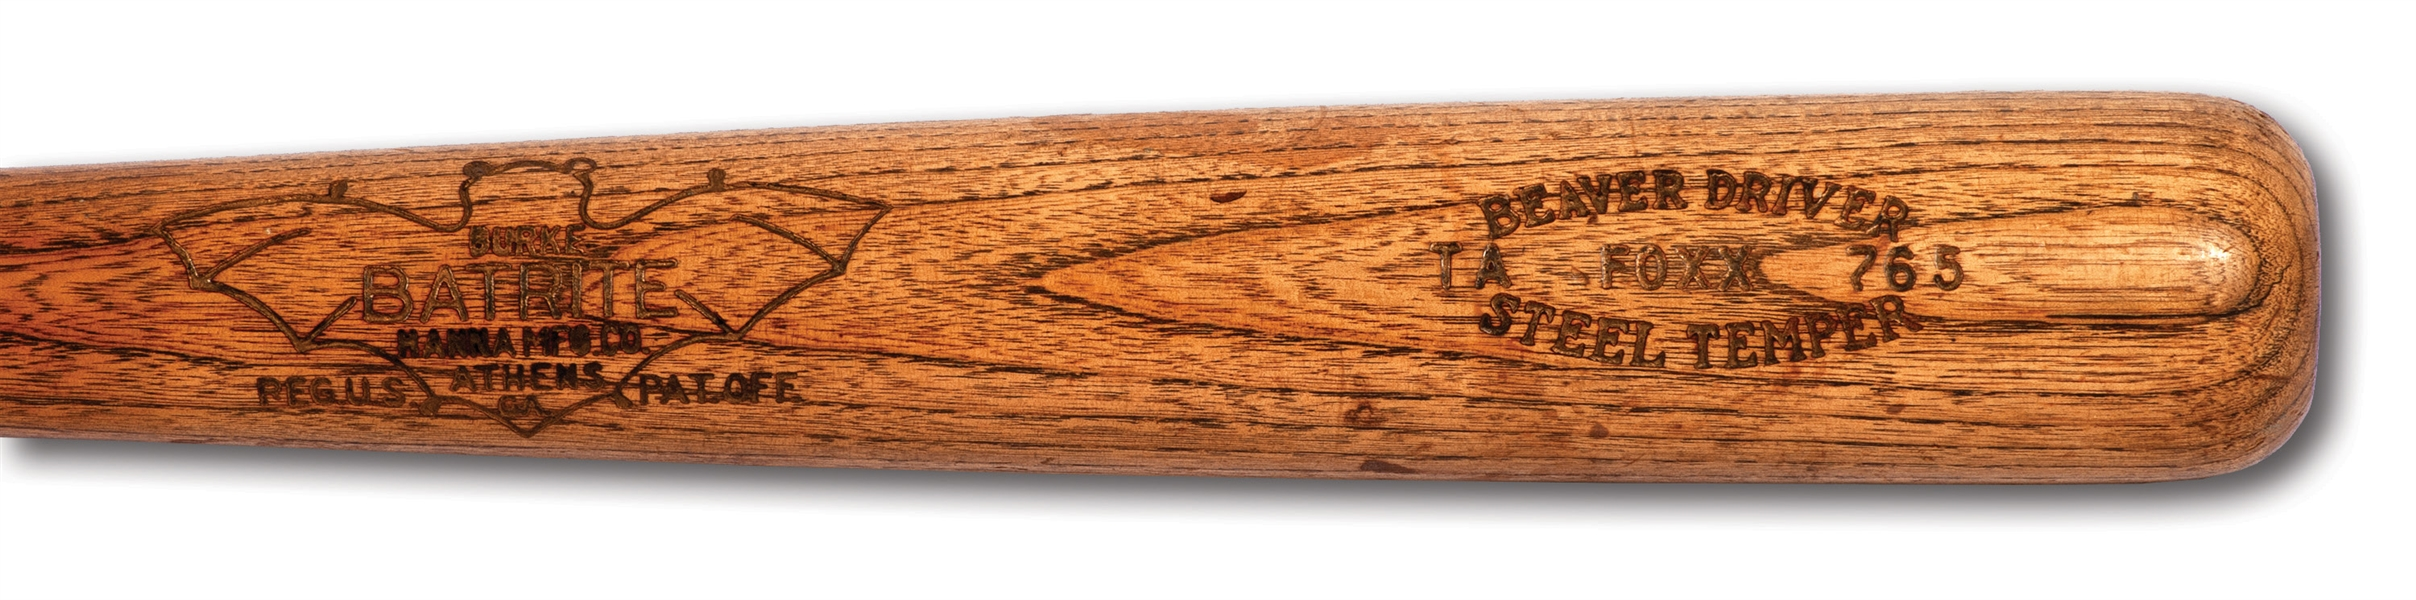 C. EARLY 1930S JIMMIE FOXX HANNA BATRITE PROFESSIONAL MODEL BAT IN OUTSTANDING CONDITION